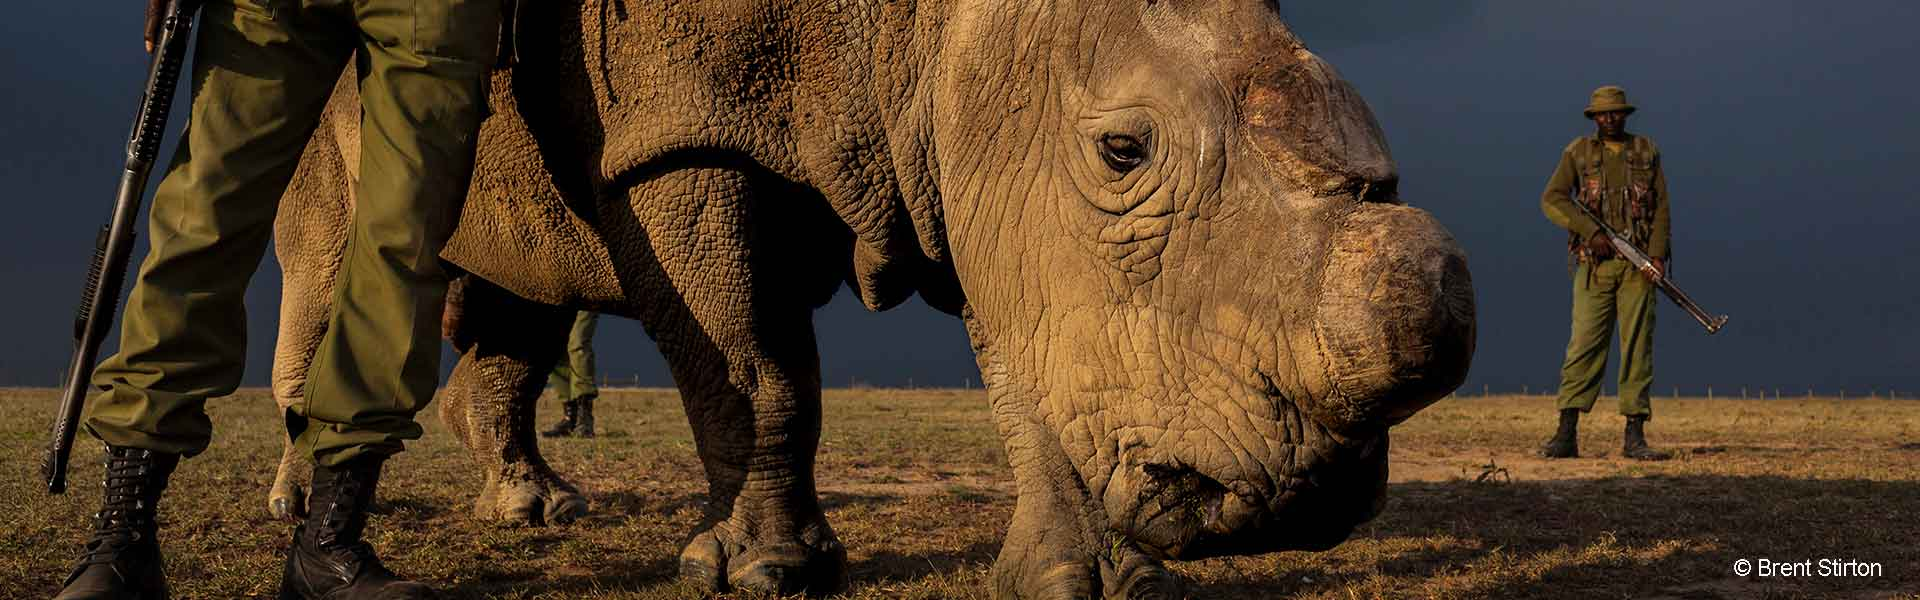 The brutal reality of rhino poaching